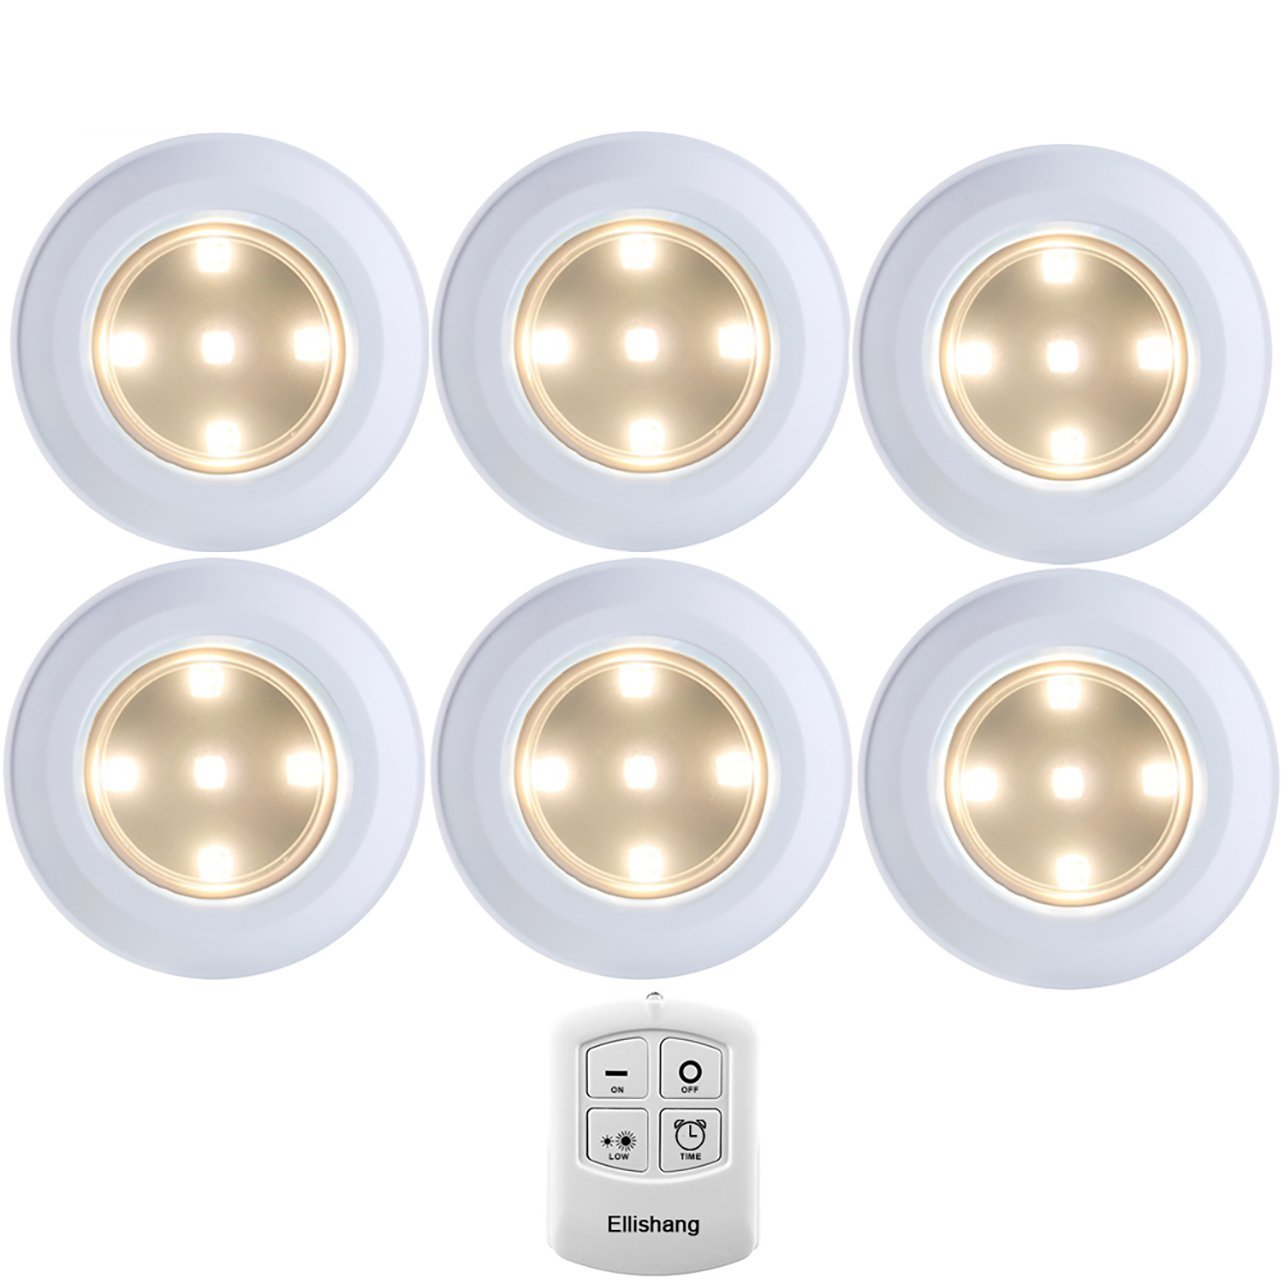 Puck Lights with Remote Control, Ellishang 6 Pack LED Tap Lights Battery-powered Wireless Night Lights Kitchen Under Cabinet Lighting,Stick on Push Lights for Closets,Pantries-Warmwhite